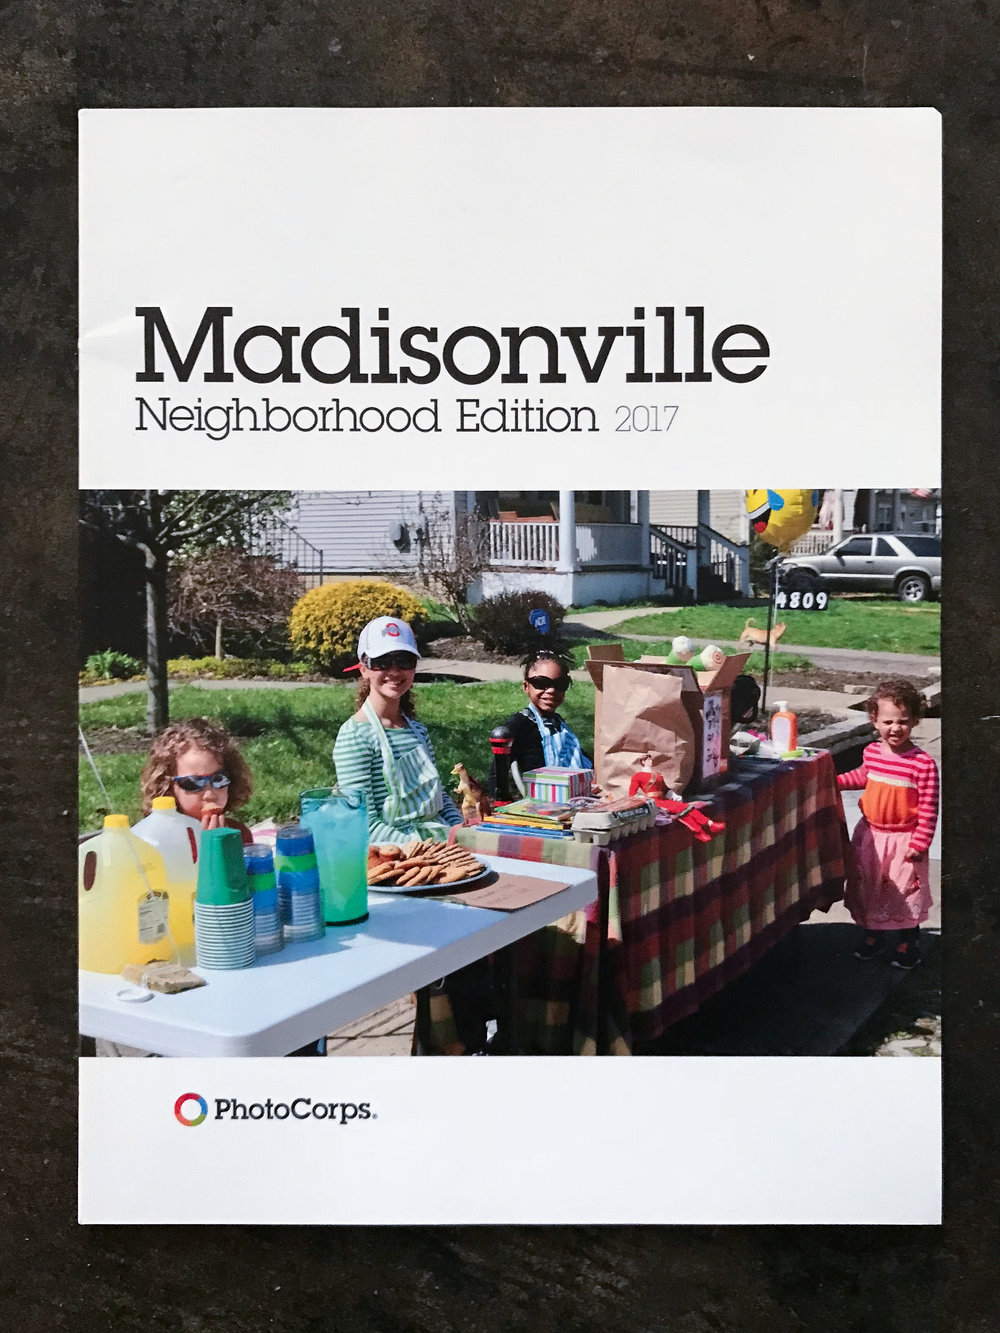 Madisonville: Neighborhood Edition 2017 - Within the PhotoCorps project, individual neighborhood books were produced. I contributed to the Madisonville edition.